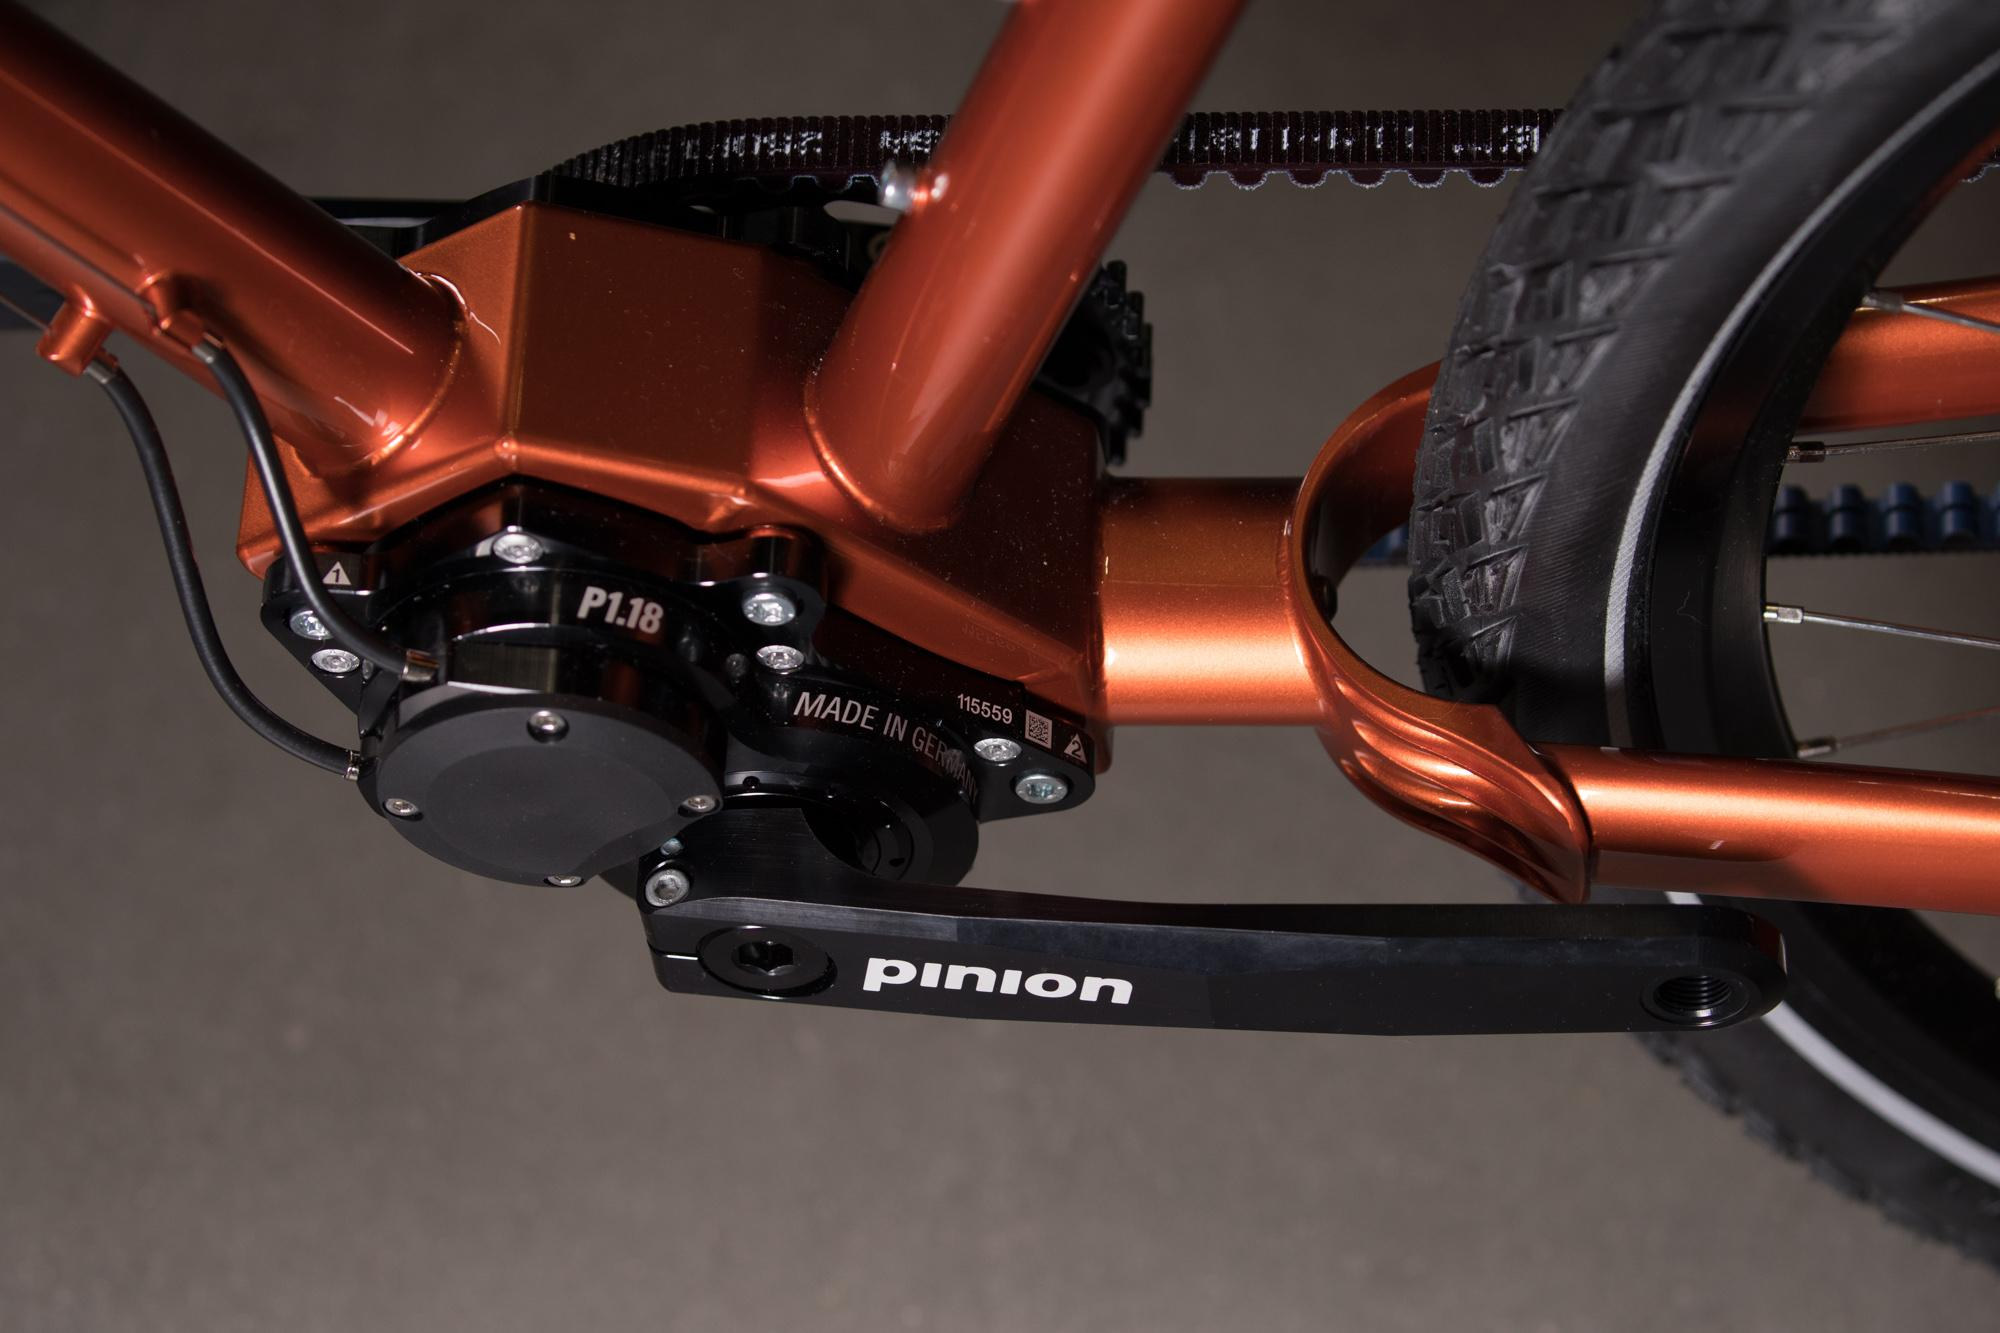 2018 NAHBS: Sunset Fade Co-Motion Pangea with Pinion Touring Bike